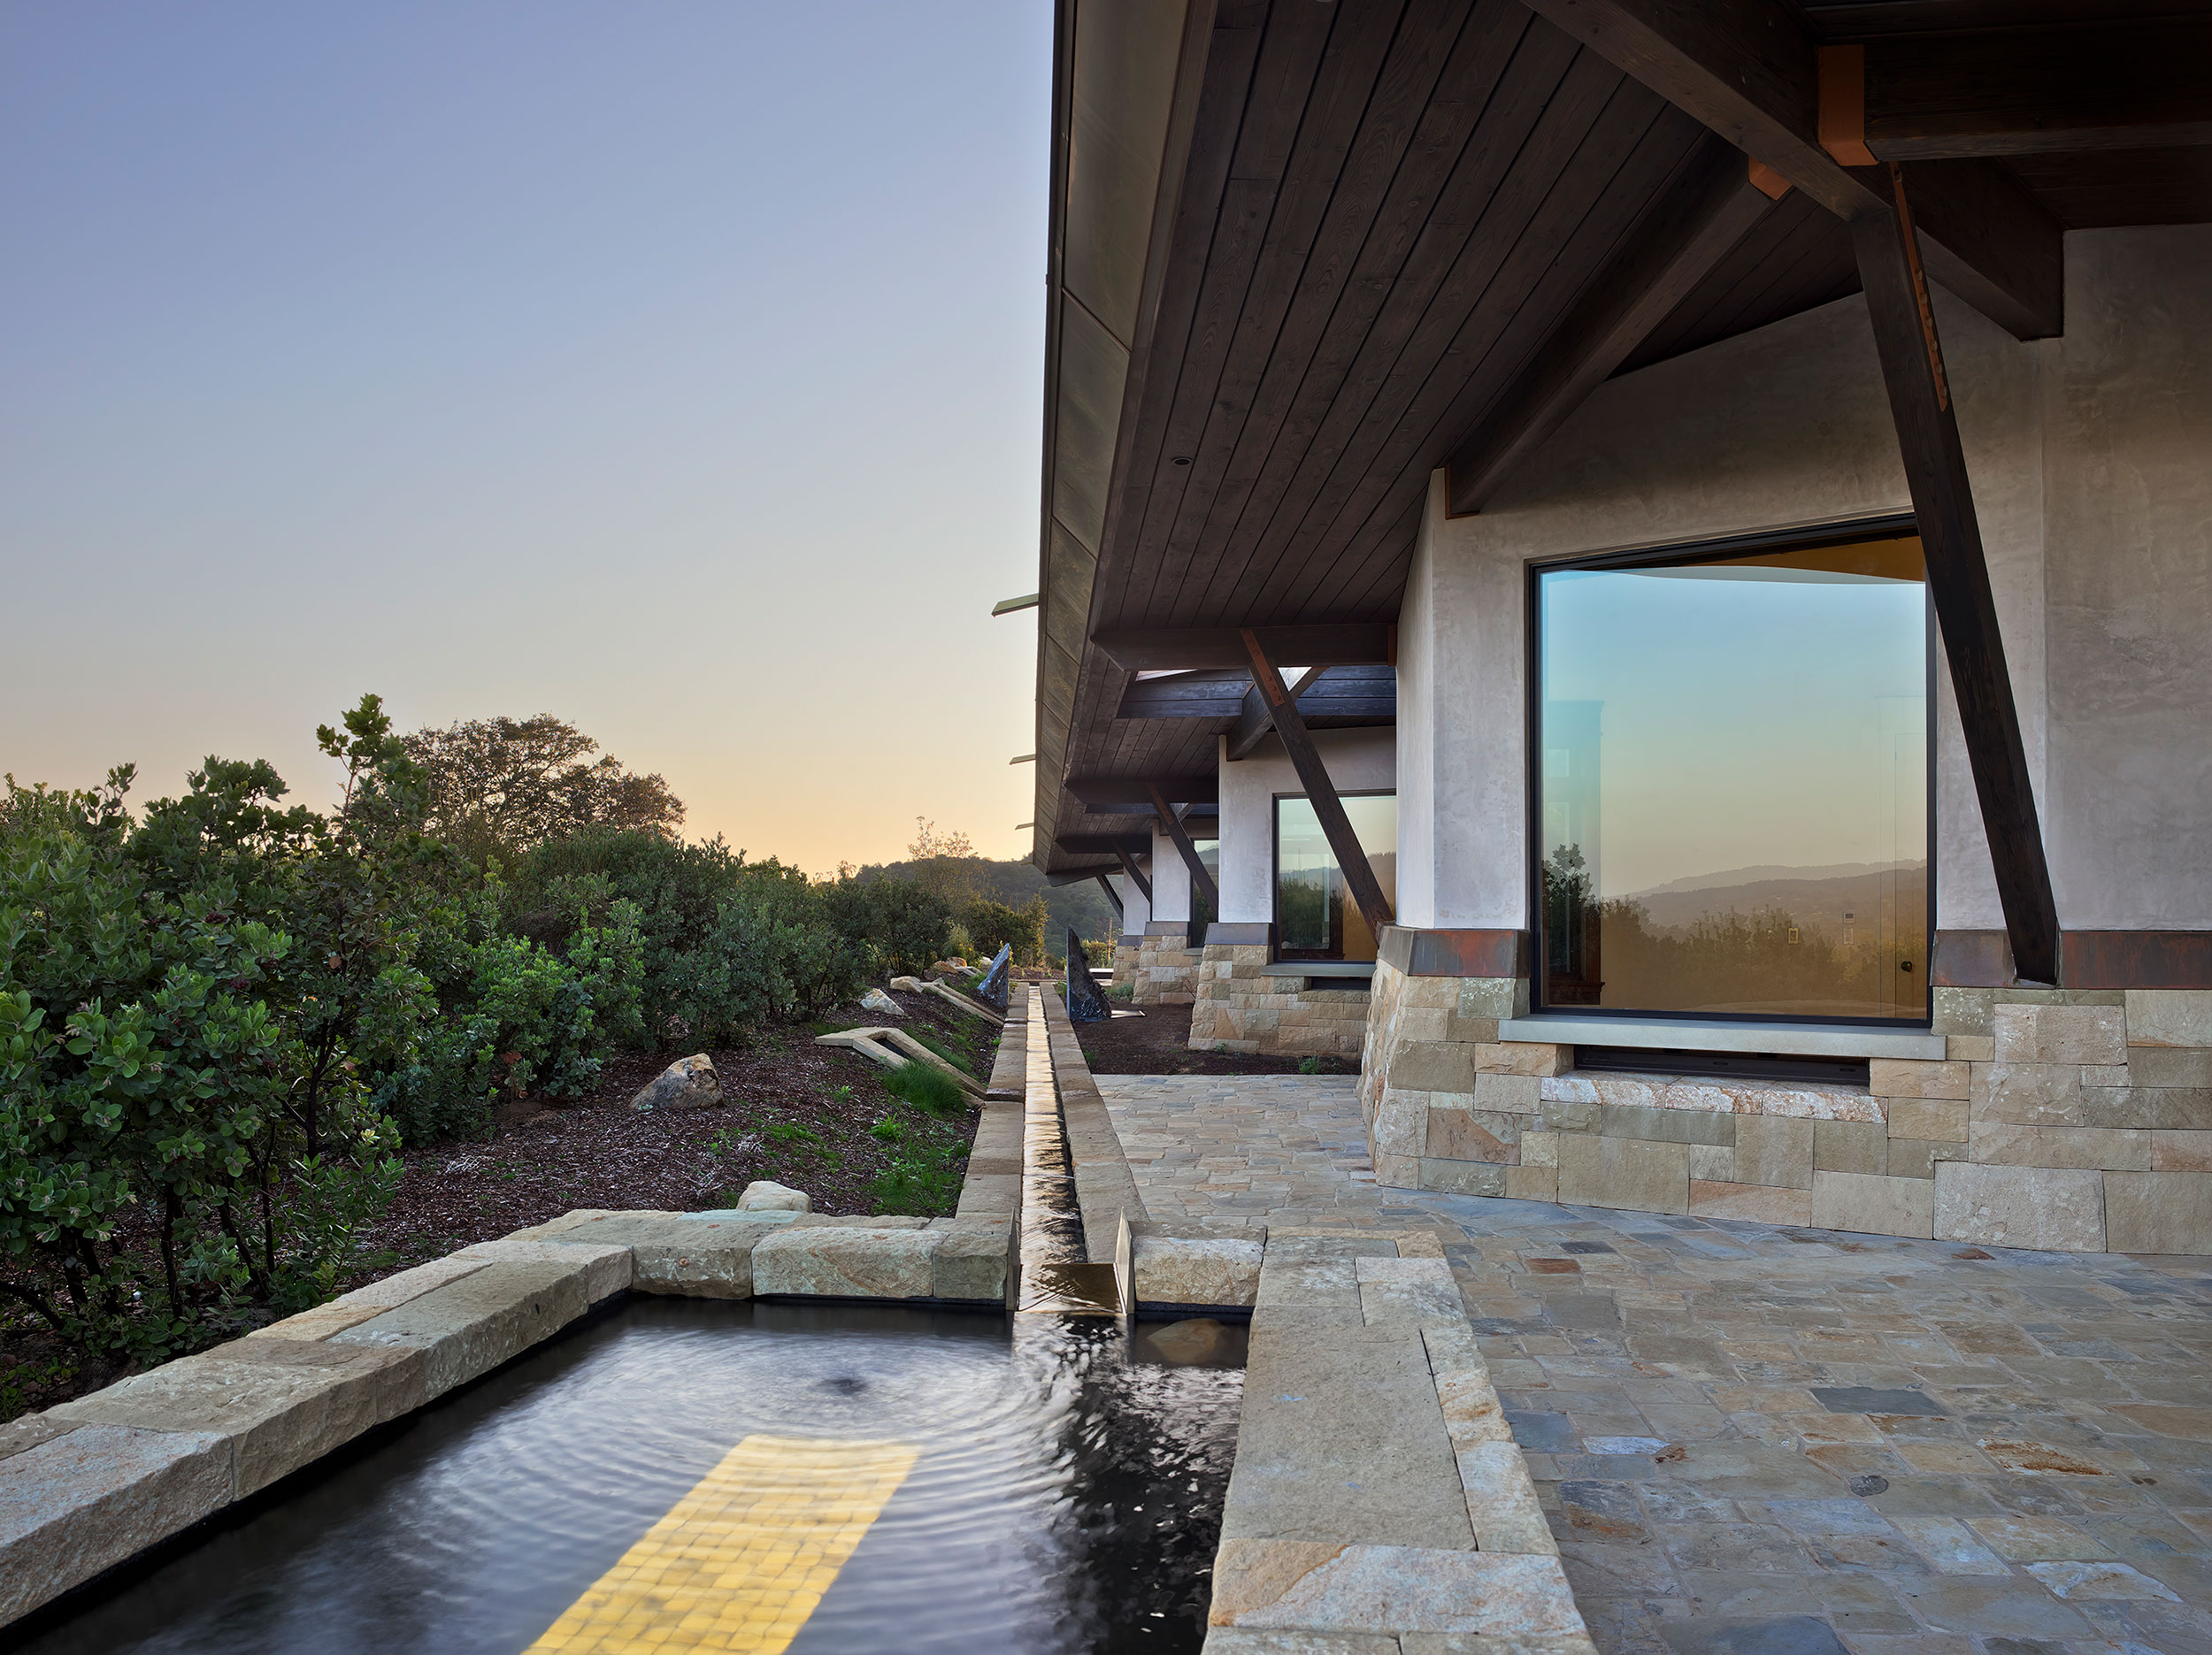 California Residence, House, Sustainability, Roof, Rainwater Collection, Natural Materials, Stone, Wood, Views